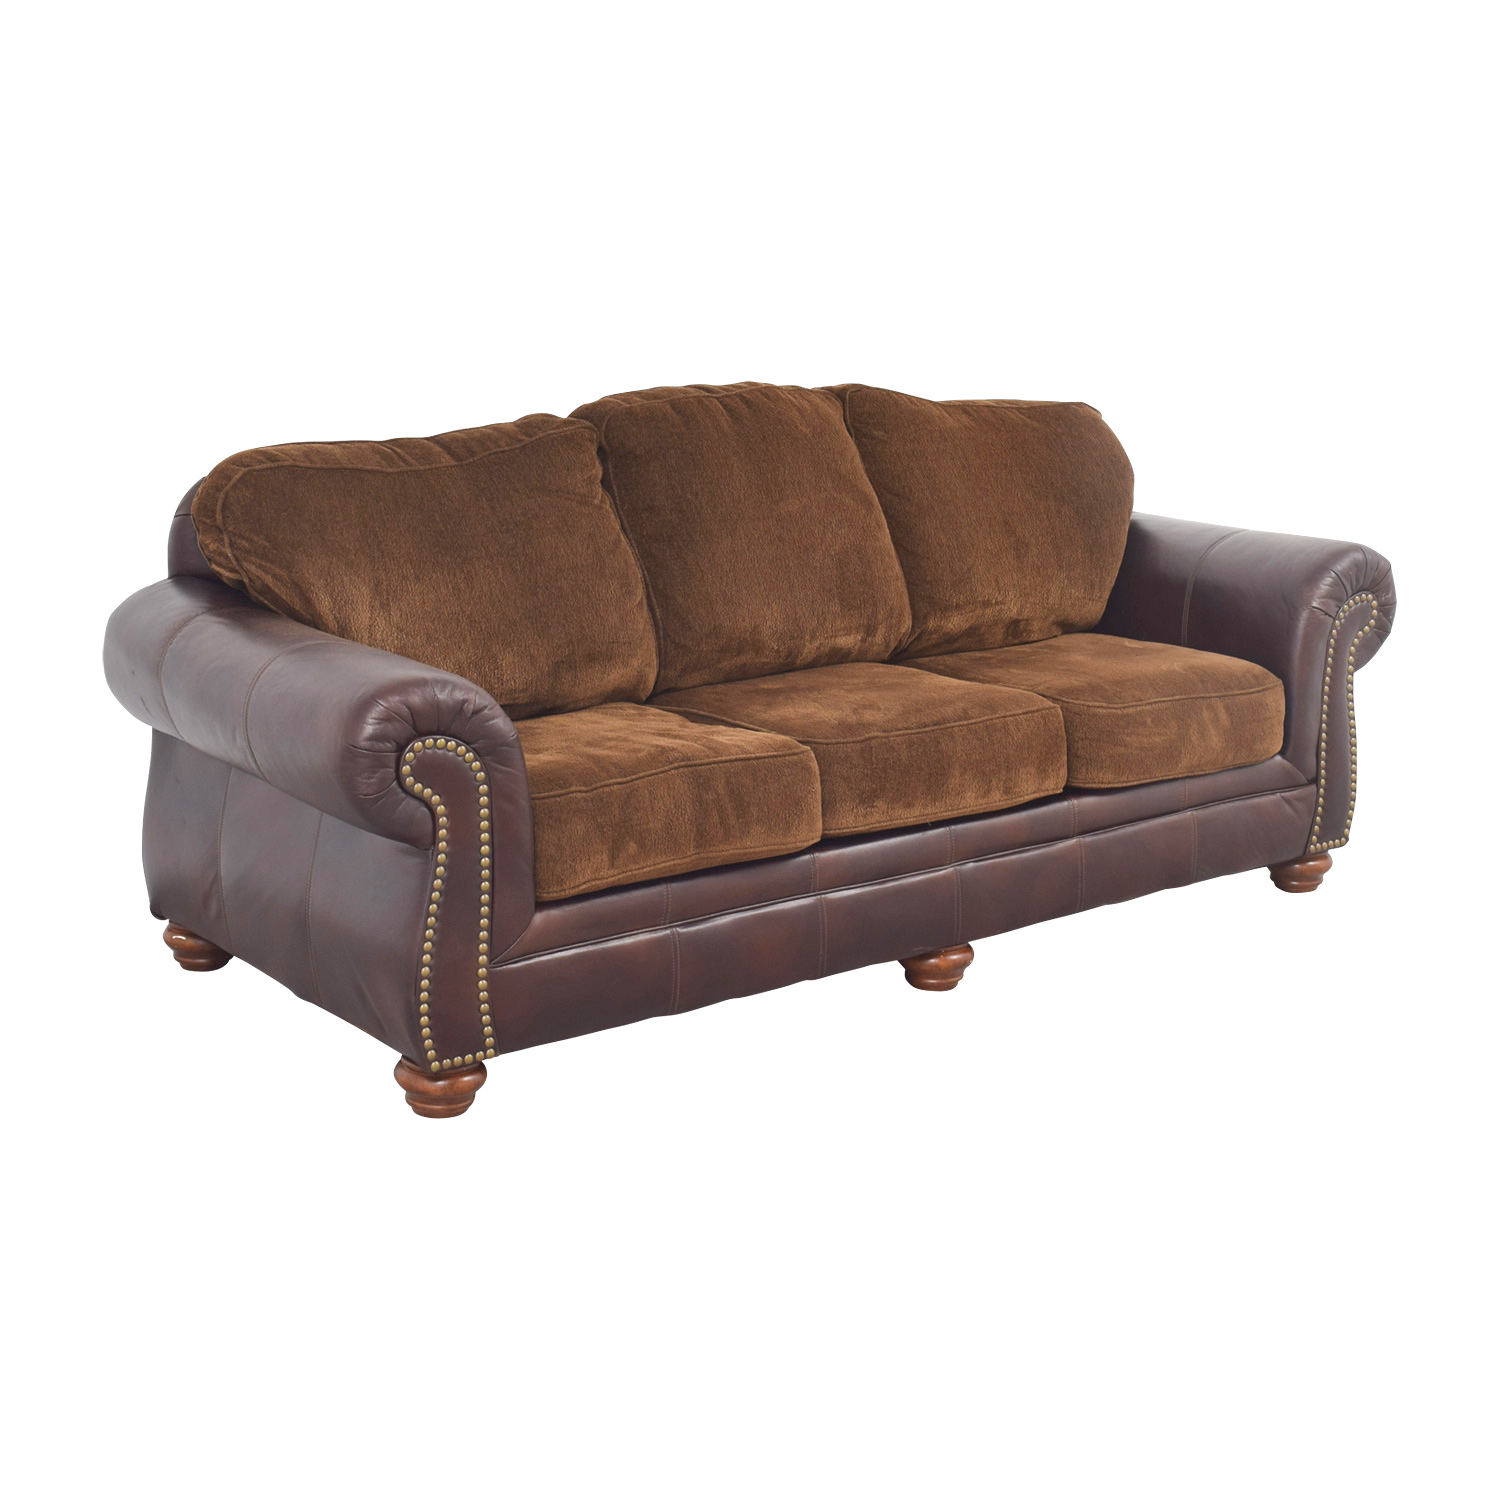 90 Off Simmons Simmons Sofa With Leather Arms Sofas